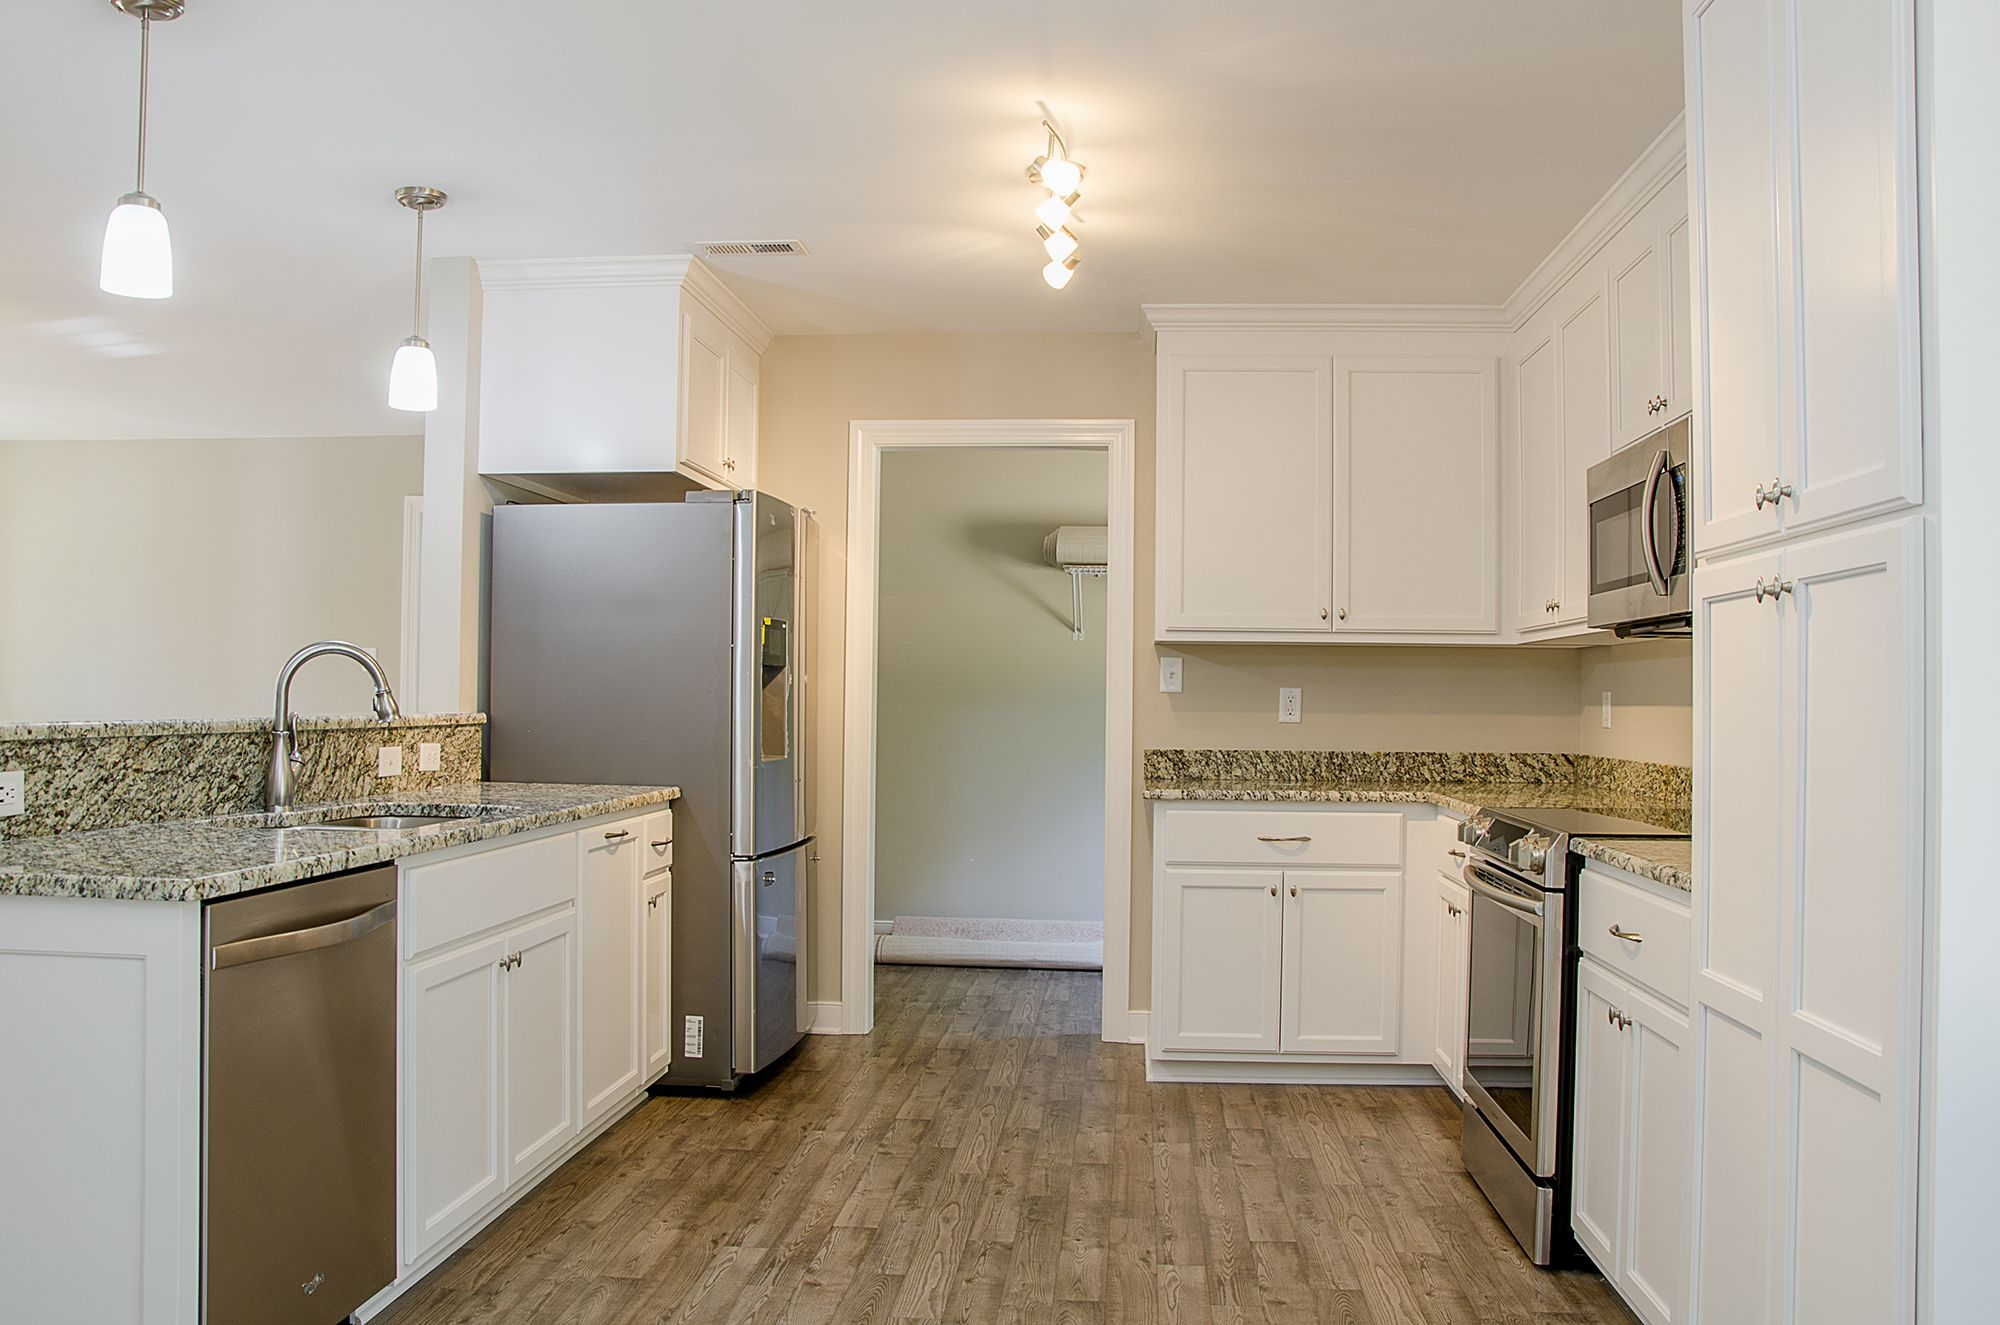 Beautiful Kitchen With White Cabinets Granite Countertops Stainless Steel Appliances An Off White Kitchens Off White Kitchen Cabinets White Kitchen Cabinets